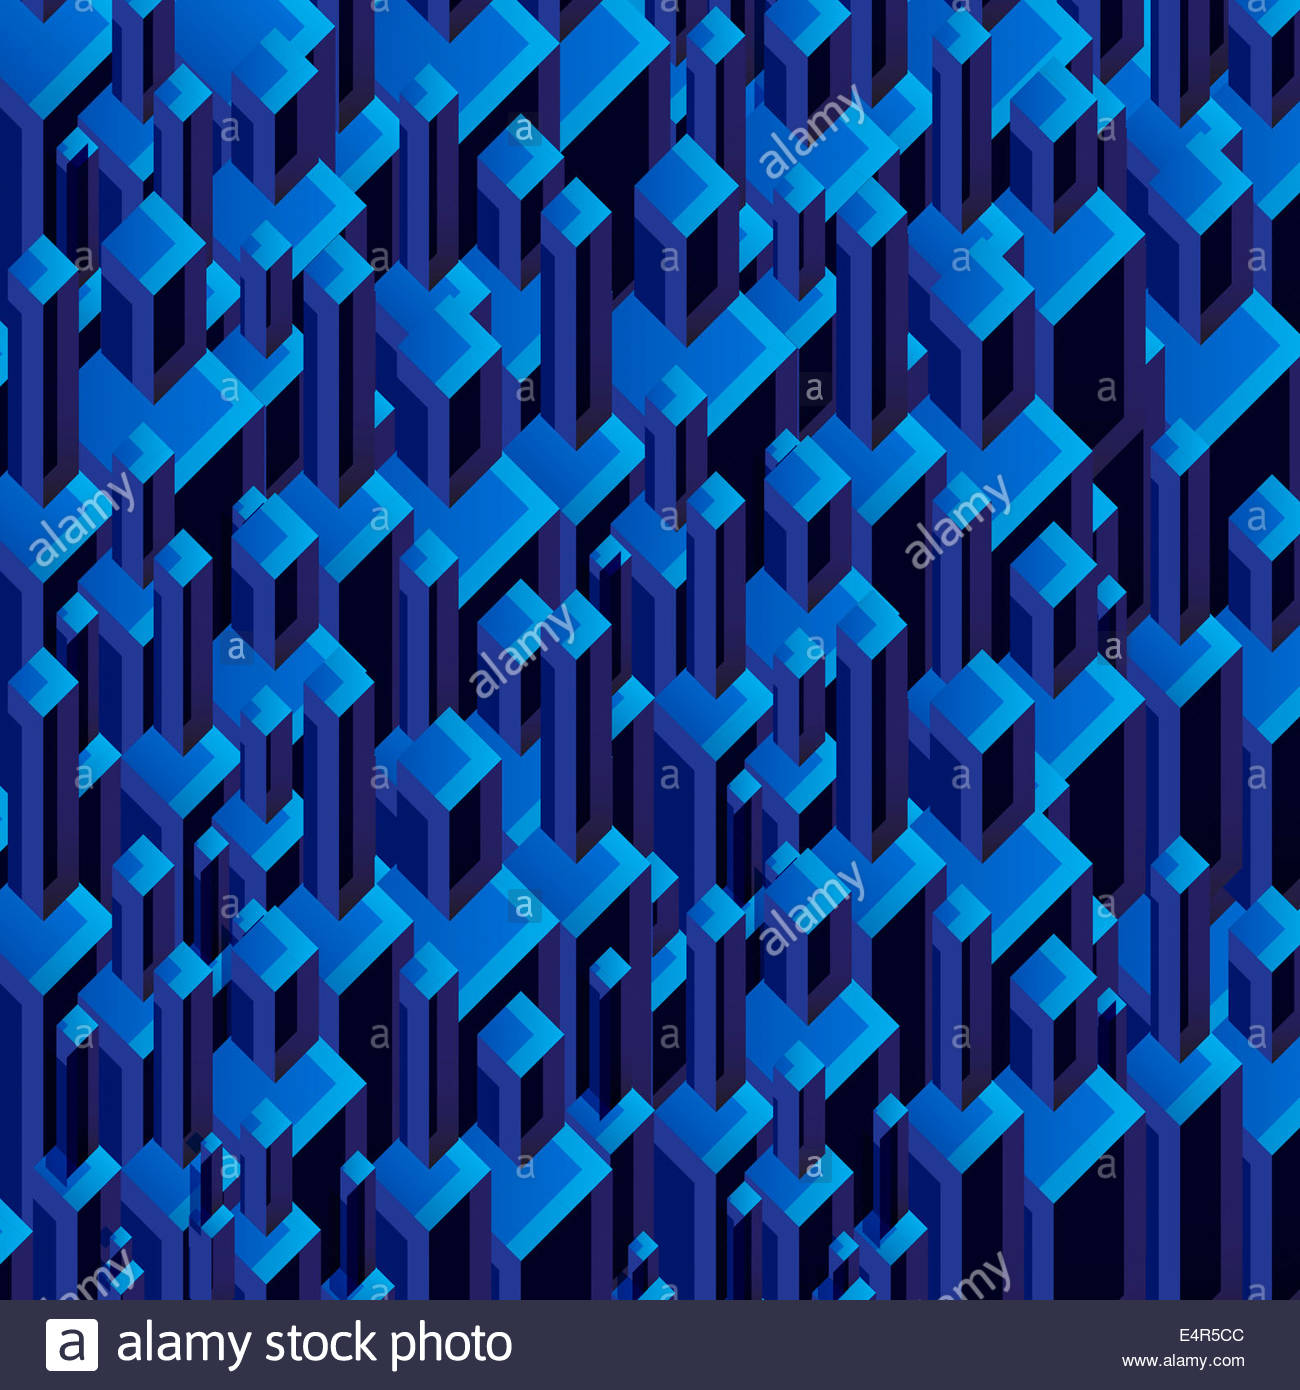 Three dimensional dark blue abstract backgrounds block pattern - Stock Image